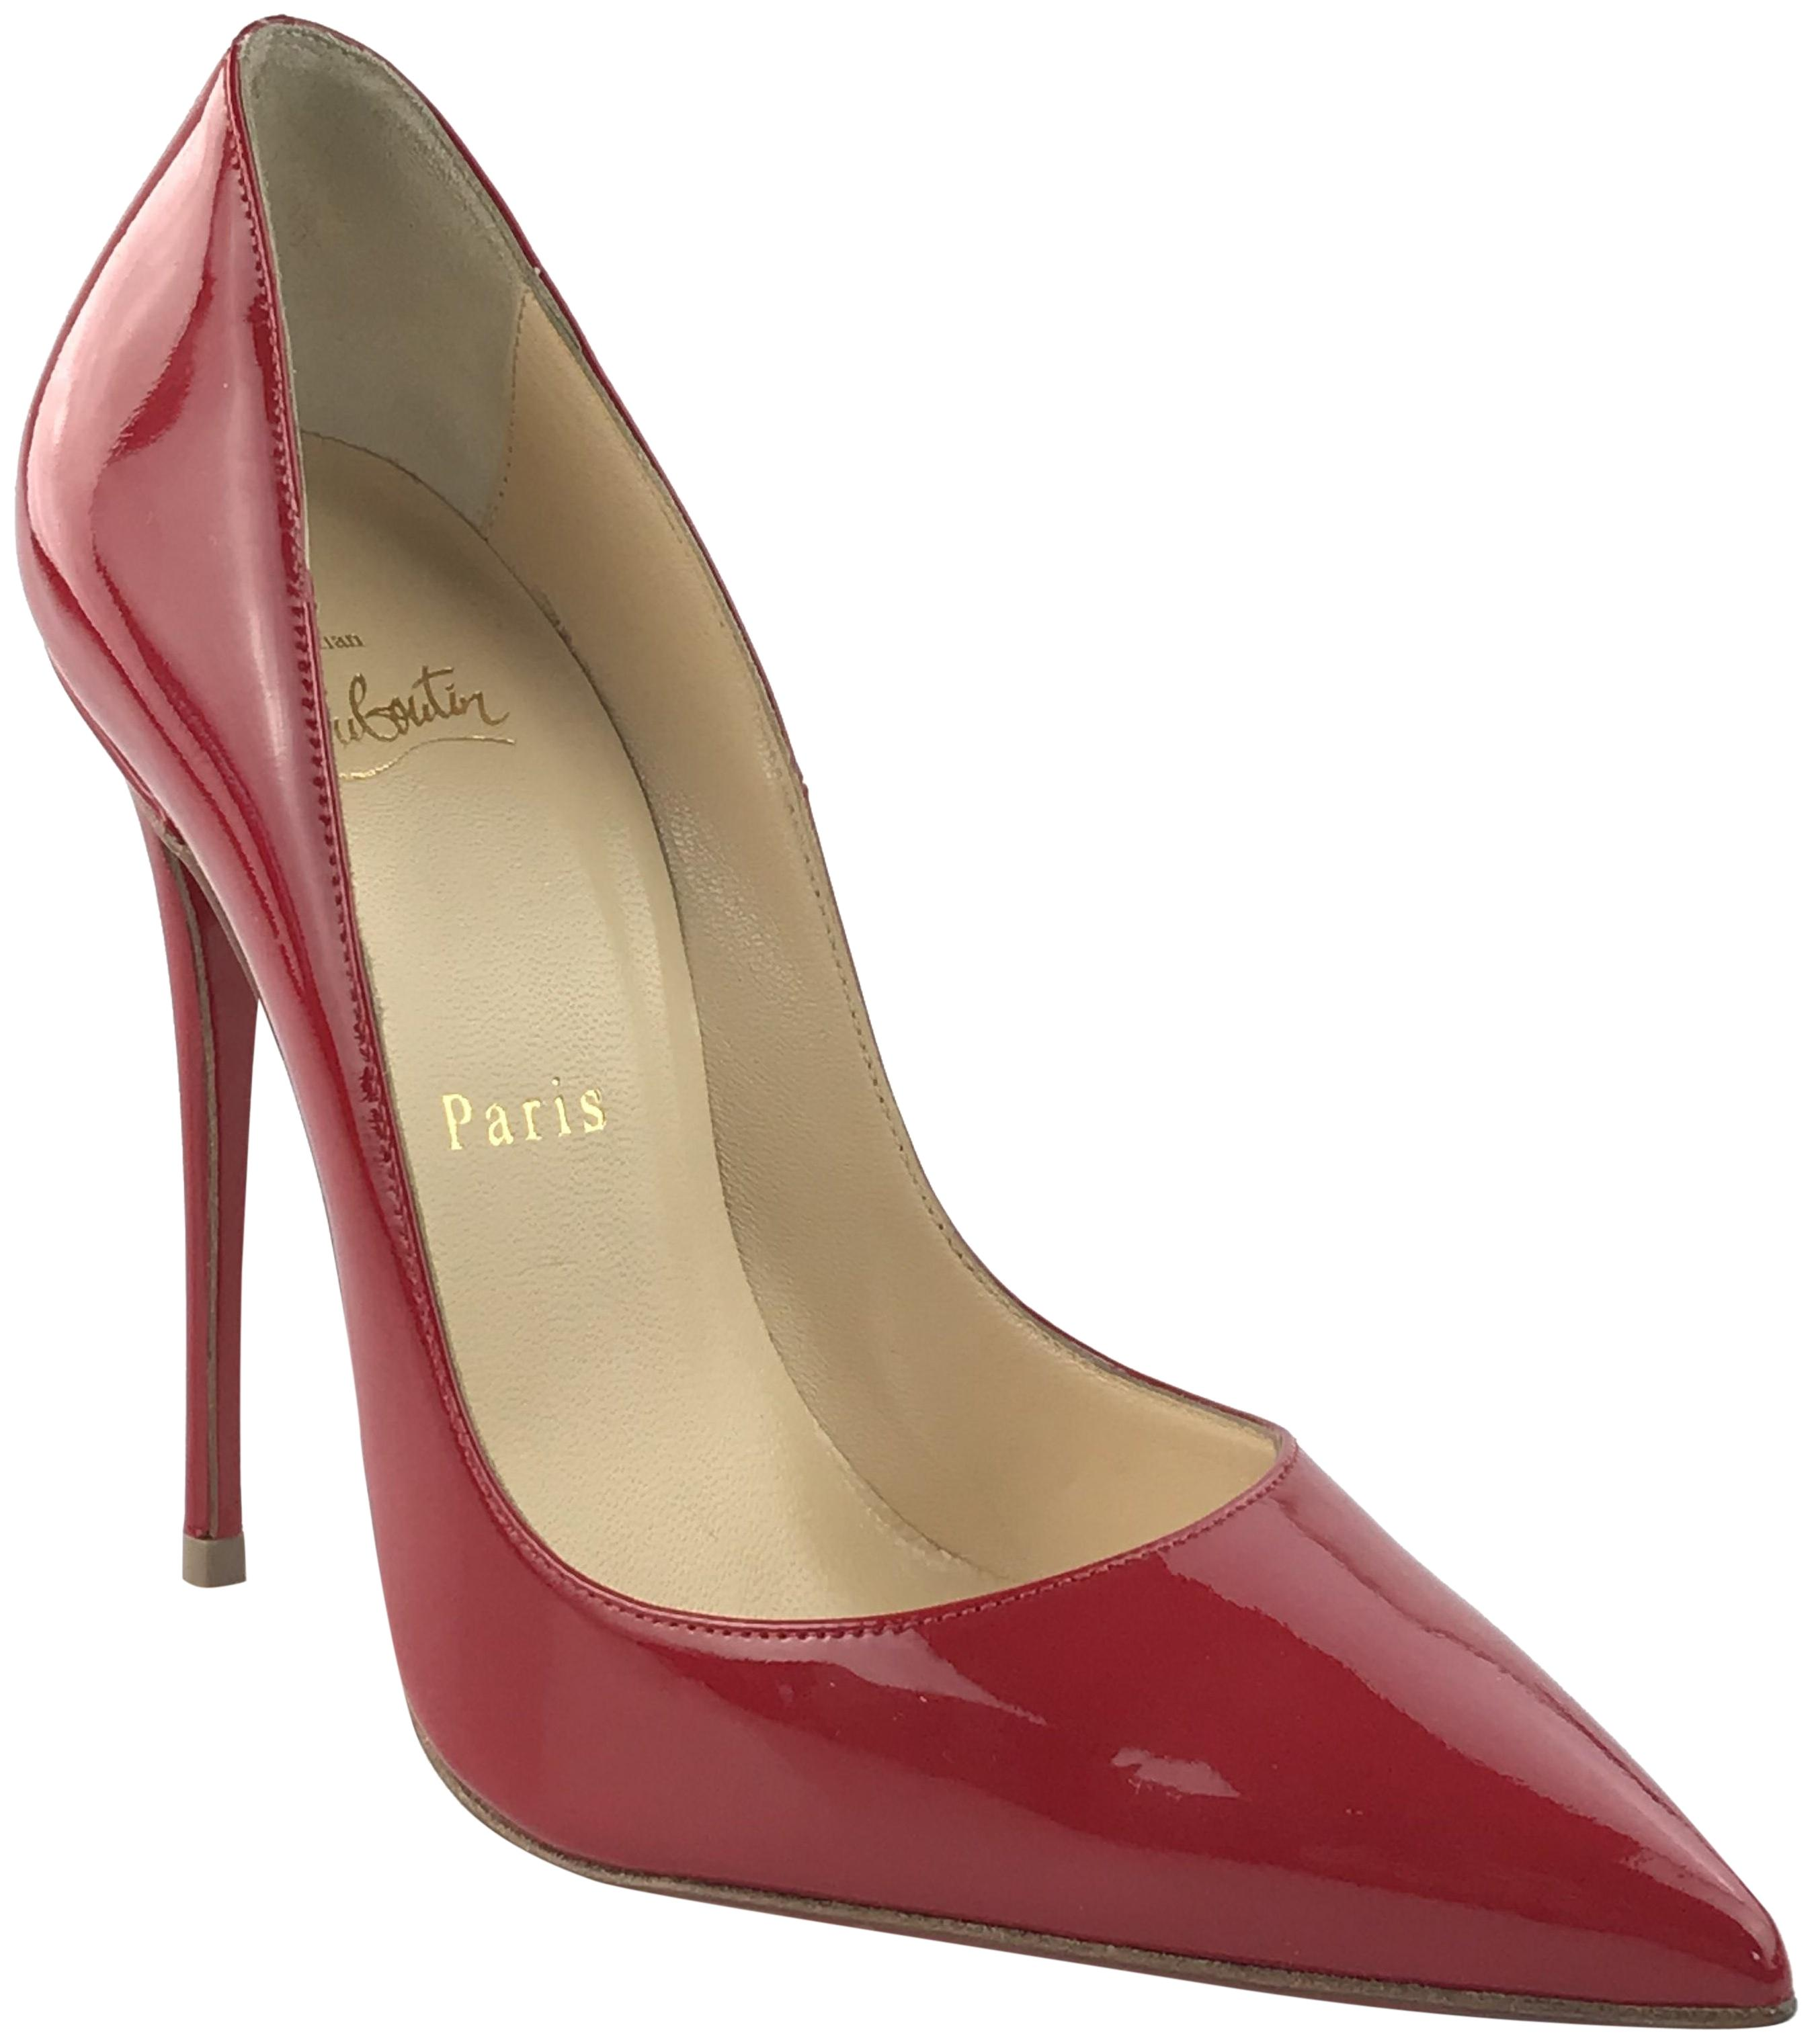 64645dce72b1 Christian Louboutin Red So Kate 120 Patent Pumps Size Size Size EU 36.5  (Approx. US 6.5) Regular (M